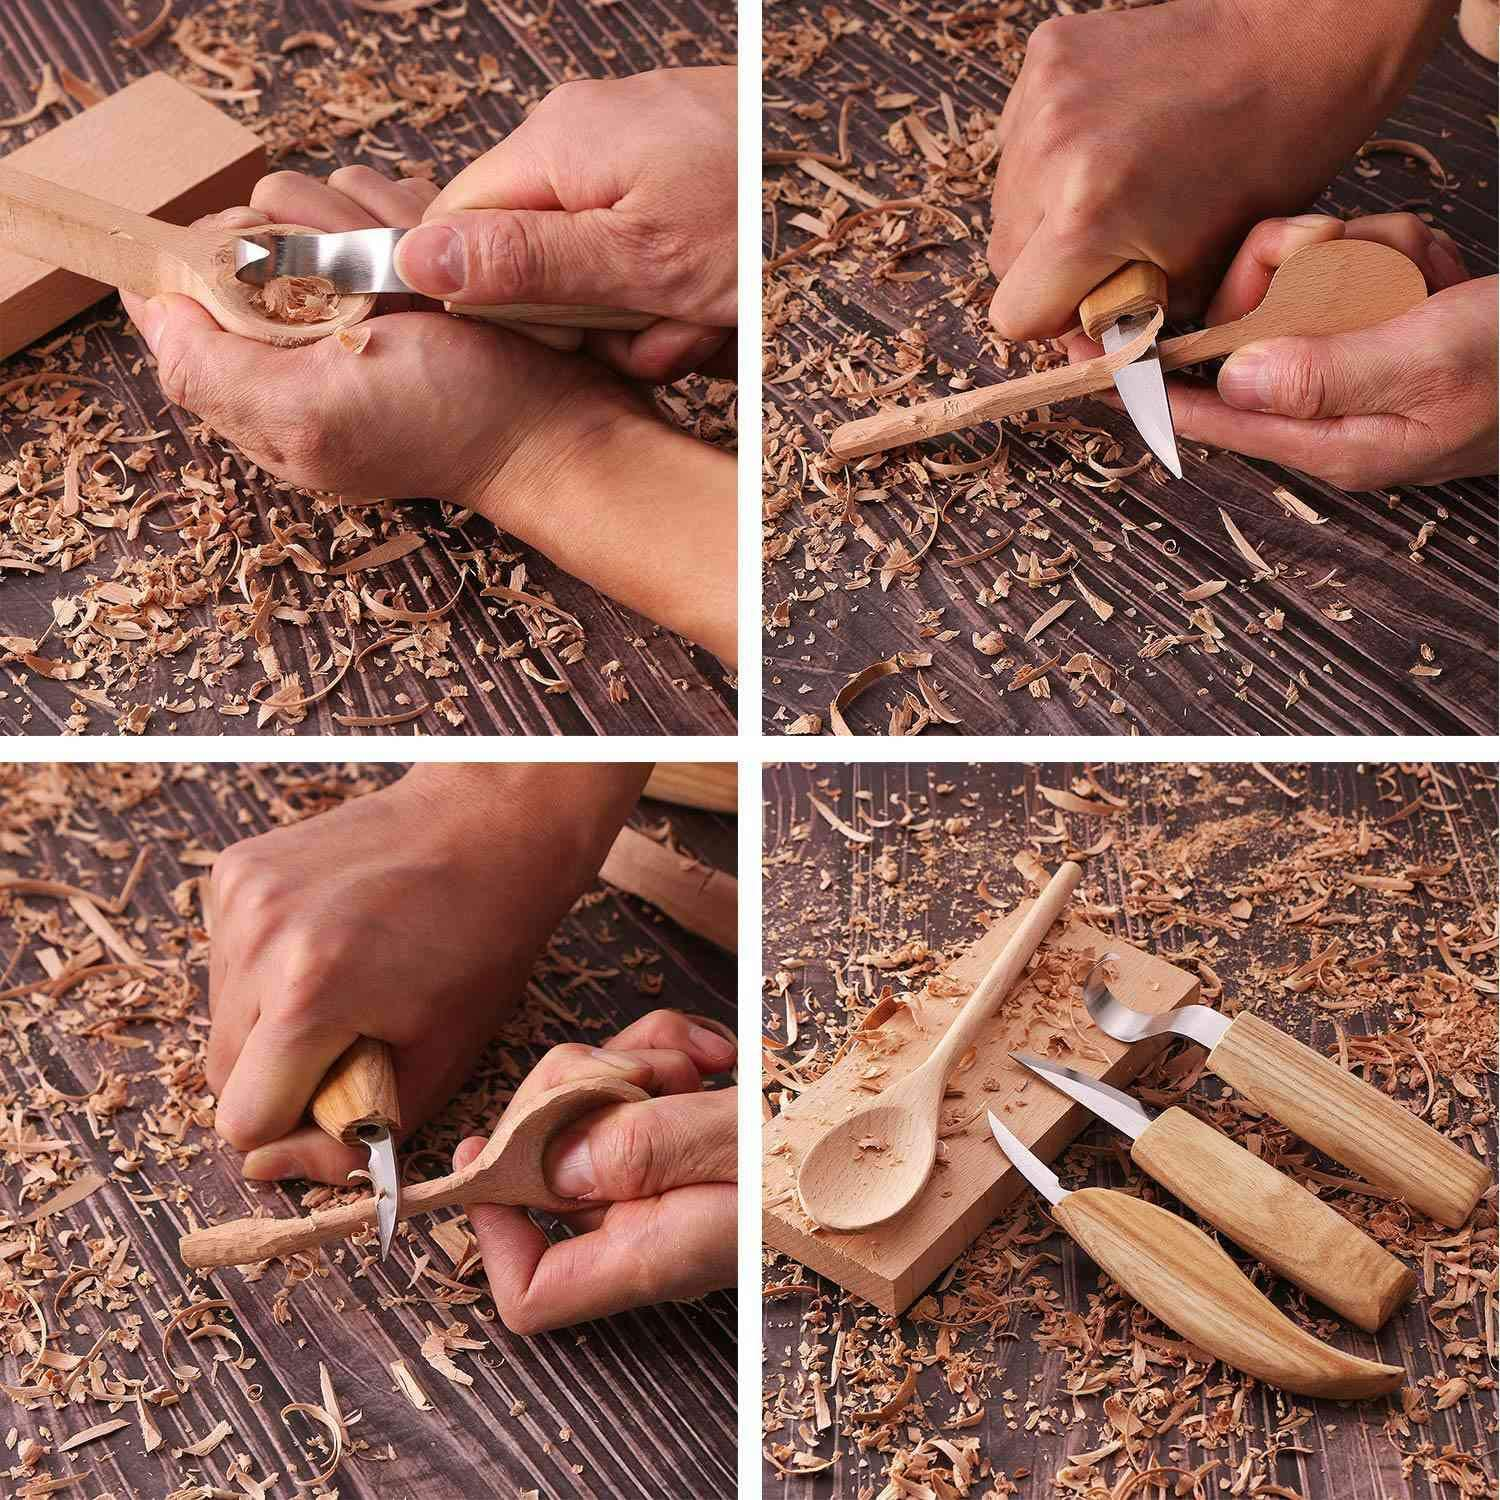 RETYLY Wood Carving Spoon Blank Beech and Walnut Wood Unfinished Wooden Craft Whittling Kit for Whittler Starter 4Pcs